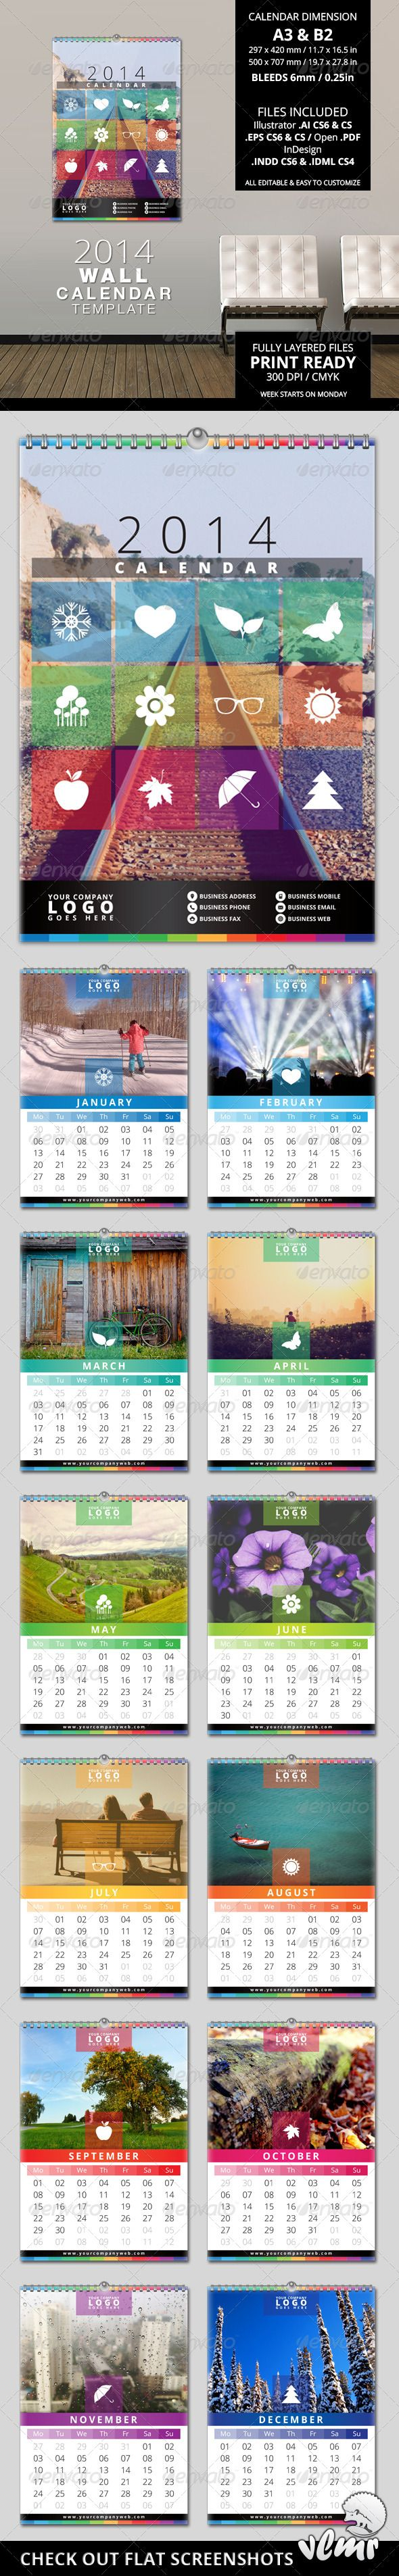 2014 Wall Calendar Template  #GraphicRiver